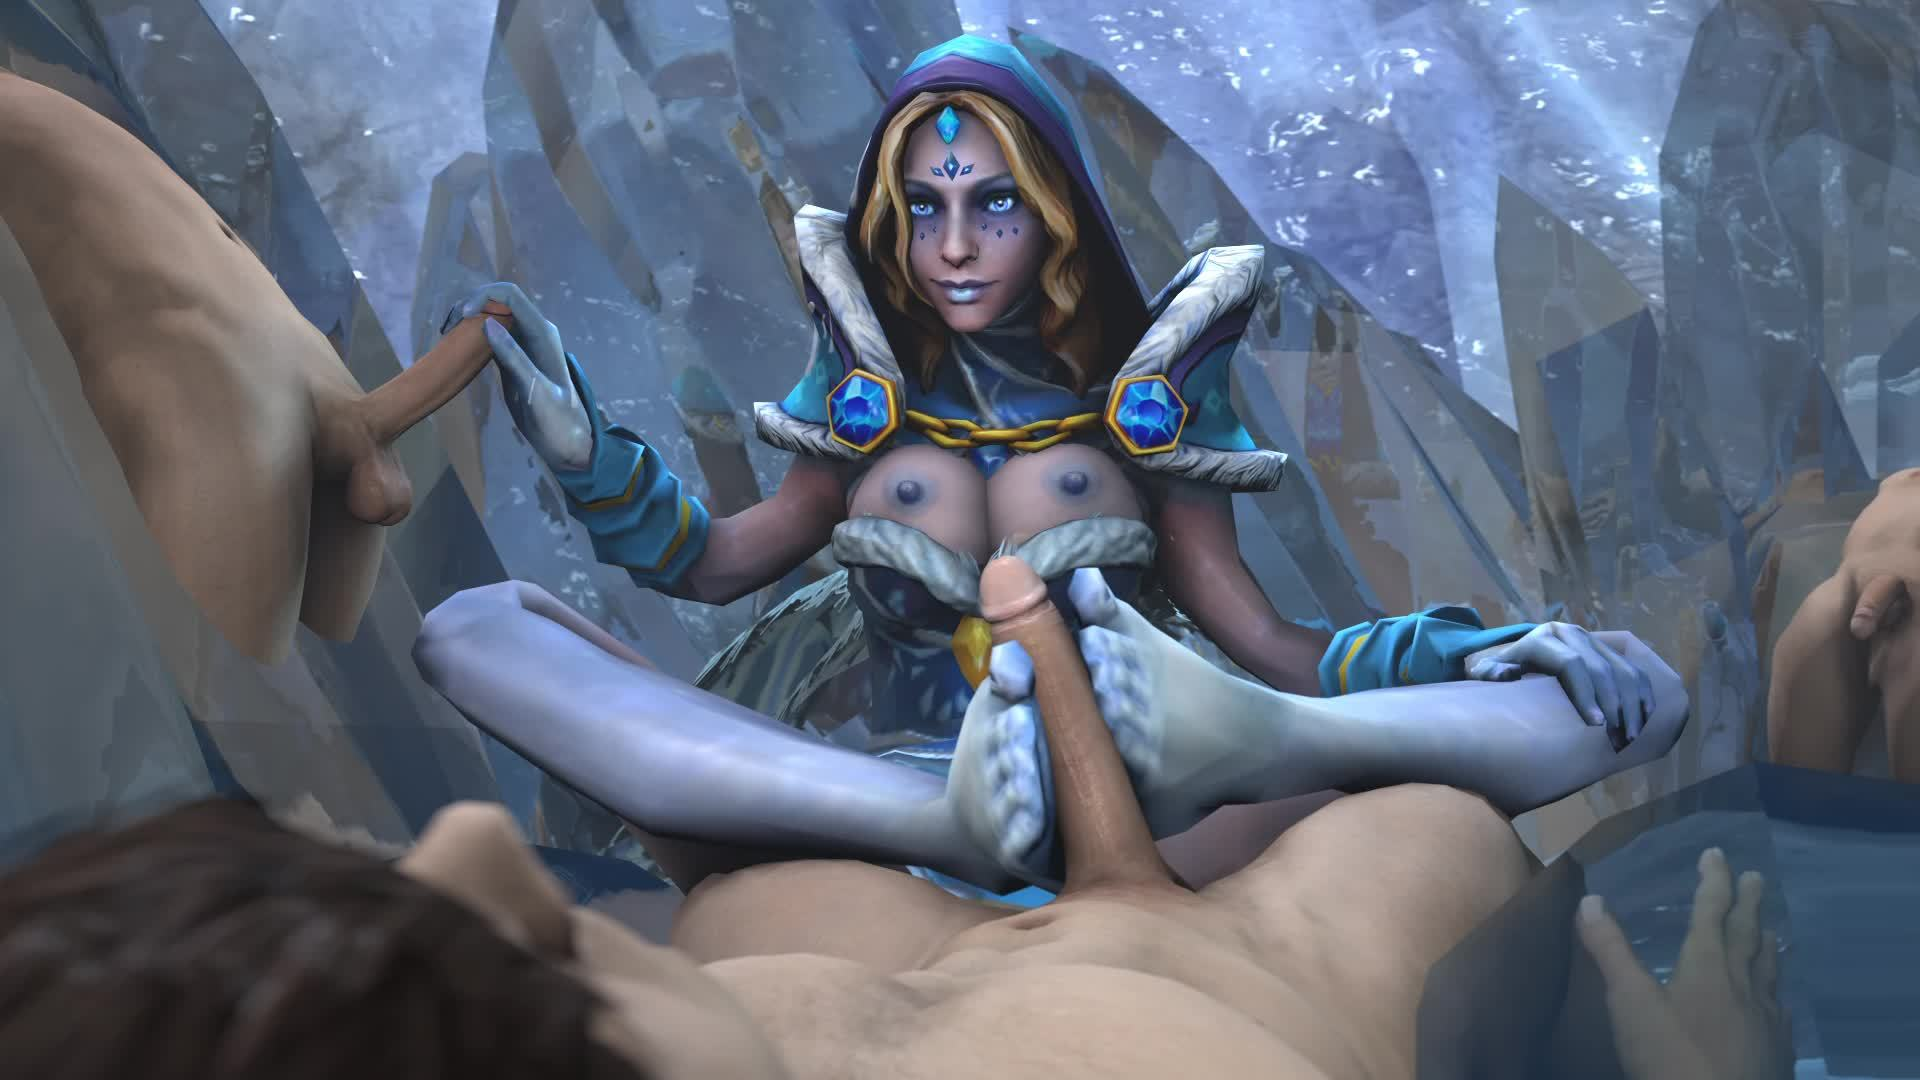 Hot girl porn dota erotic movie